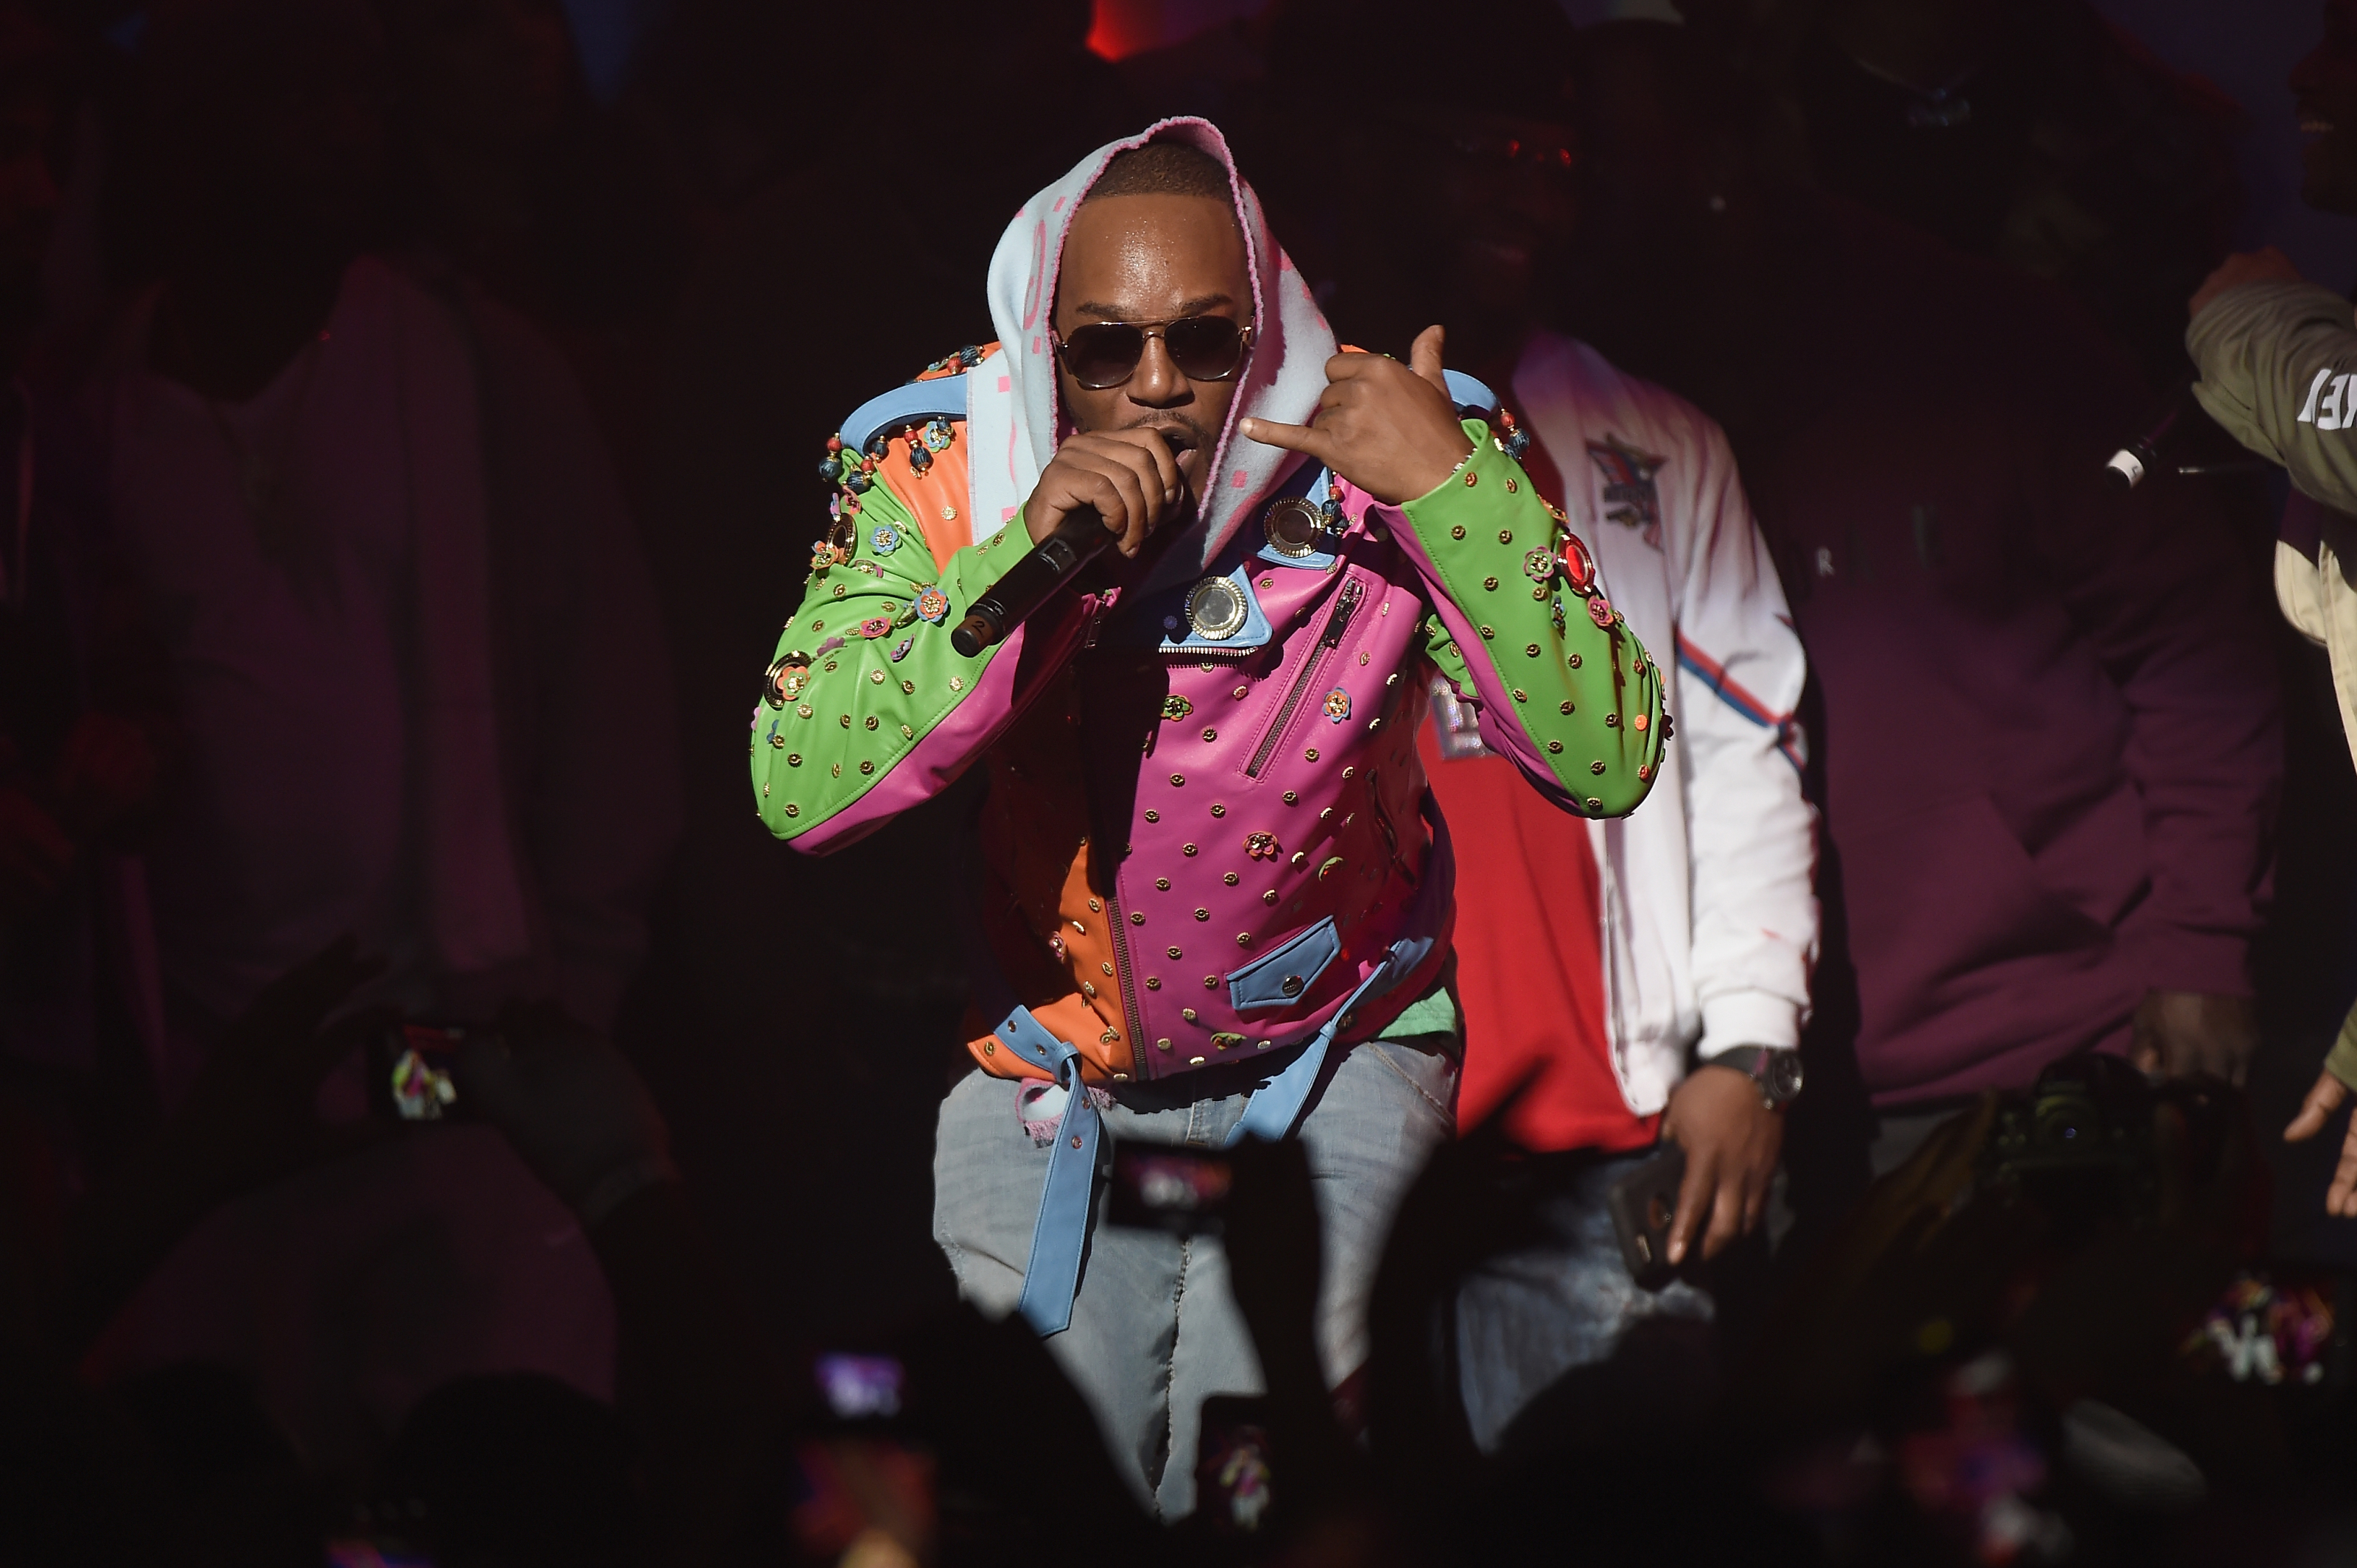 Old and New: Rappers in fashion, from Cam'ron to A$AP Rocky